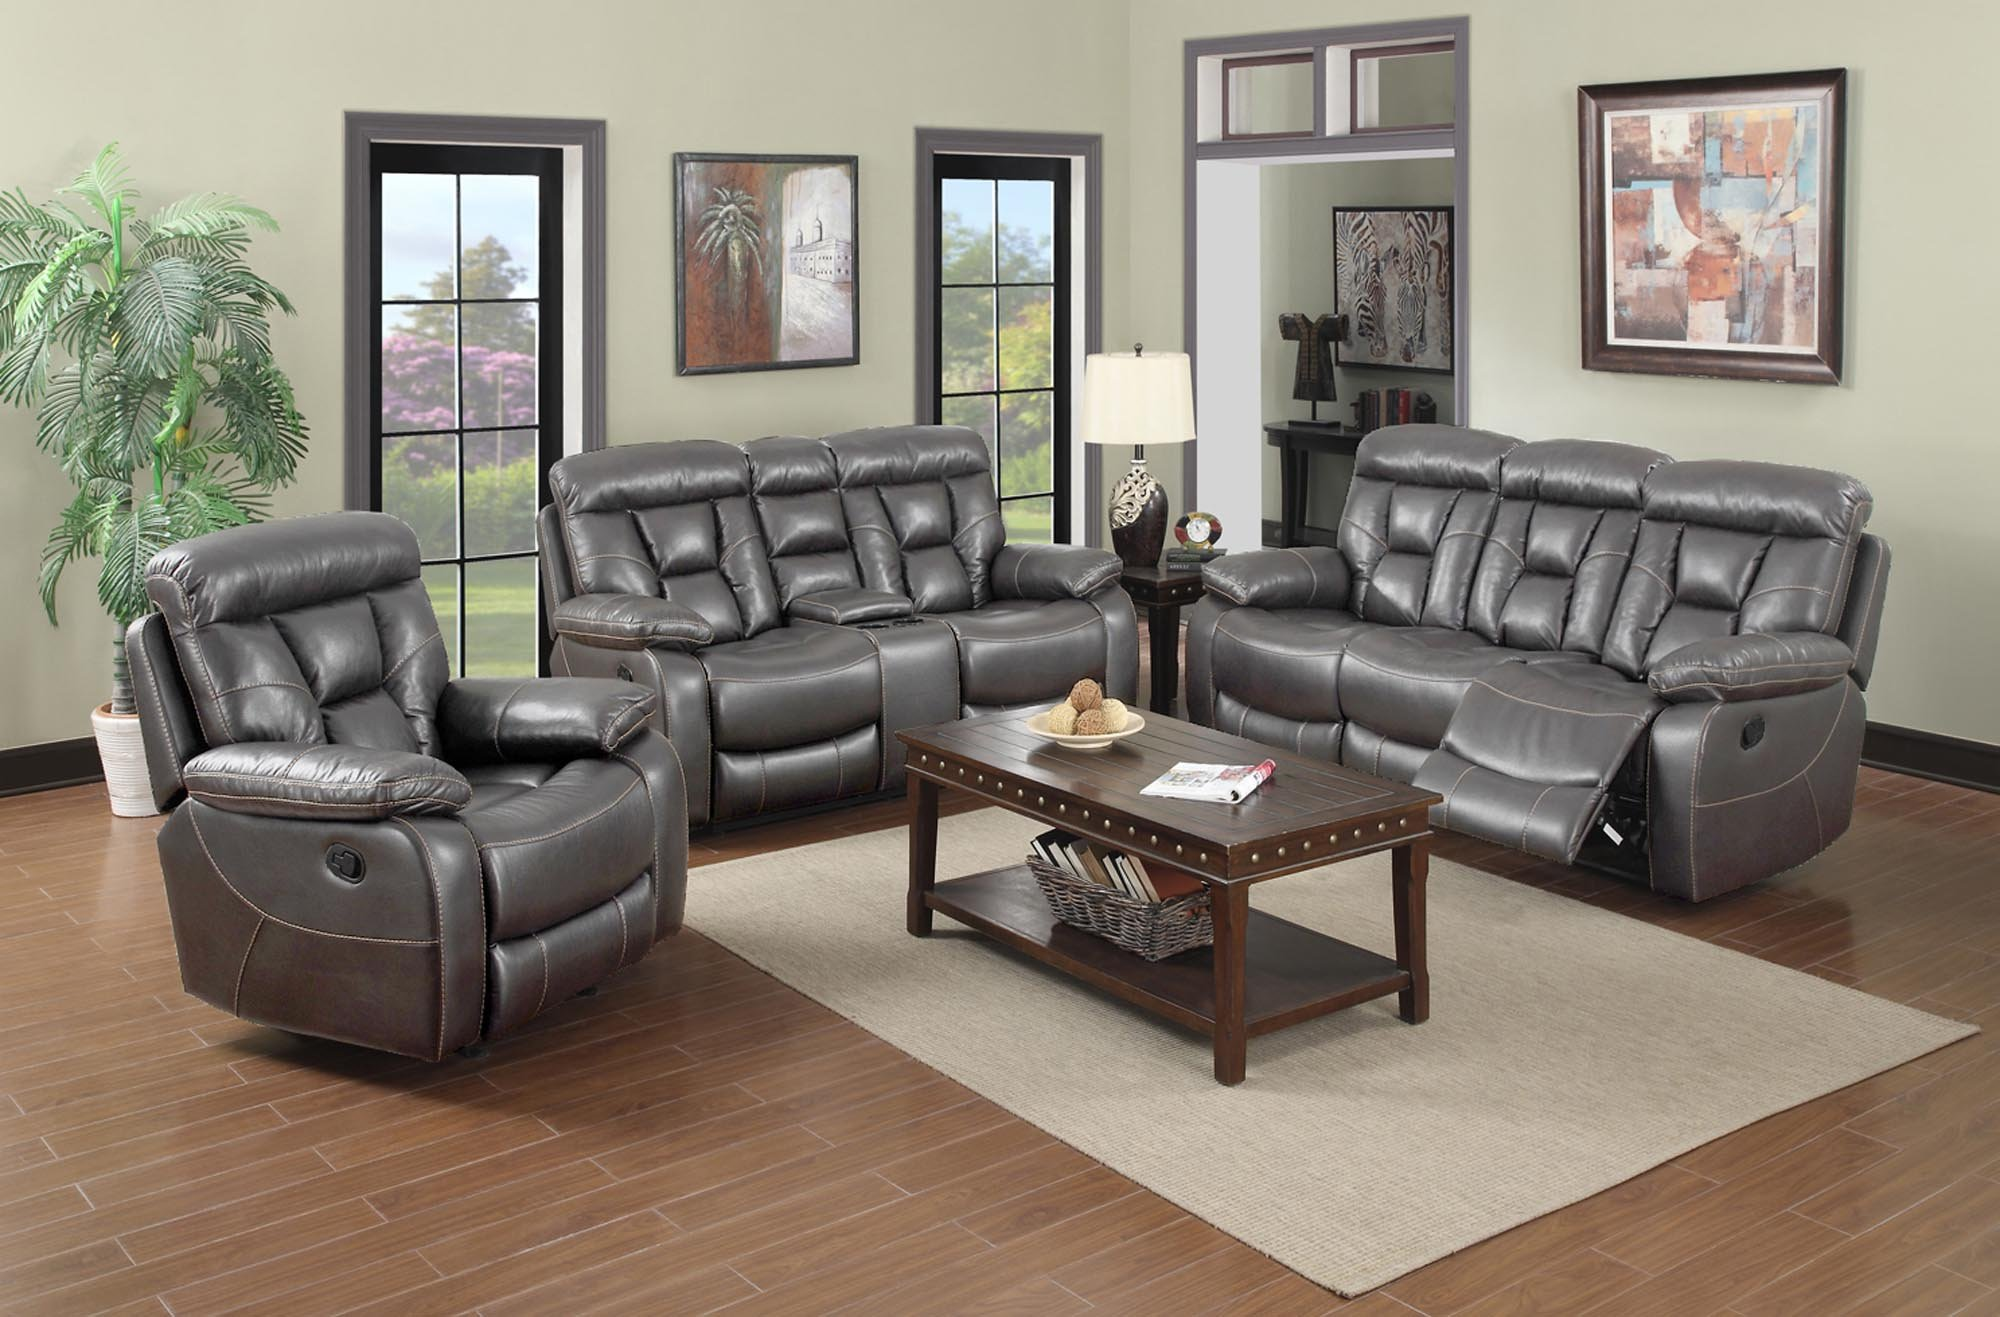 Grey Faux Leather Living Room Set